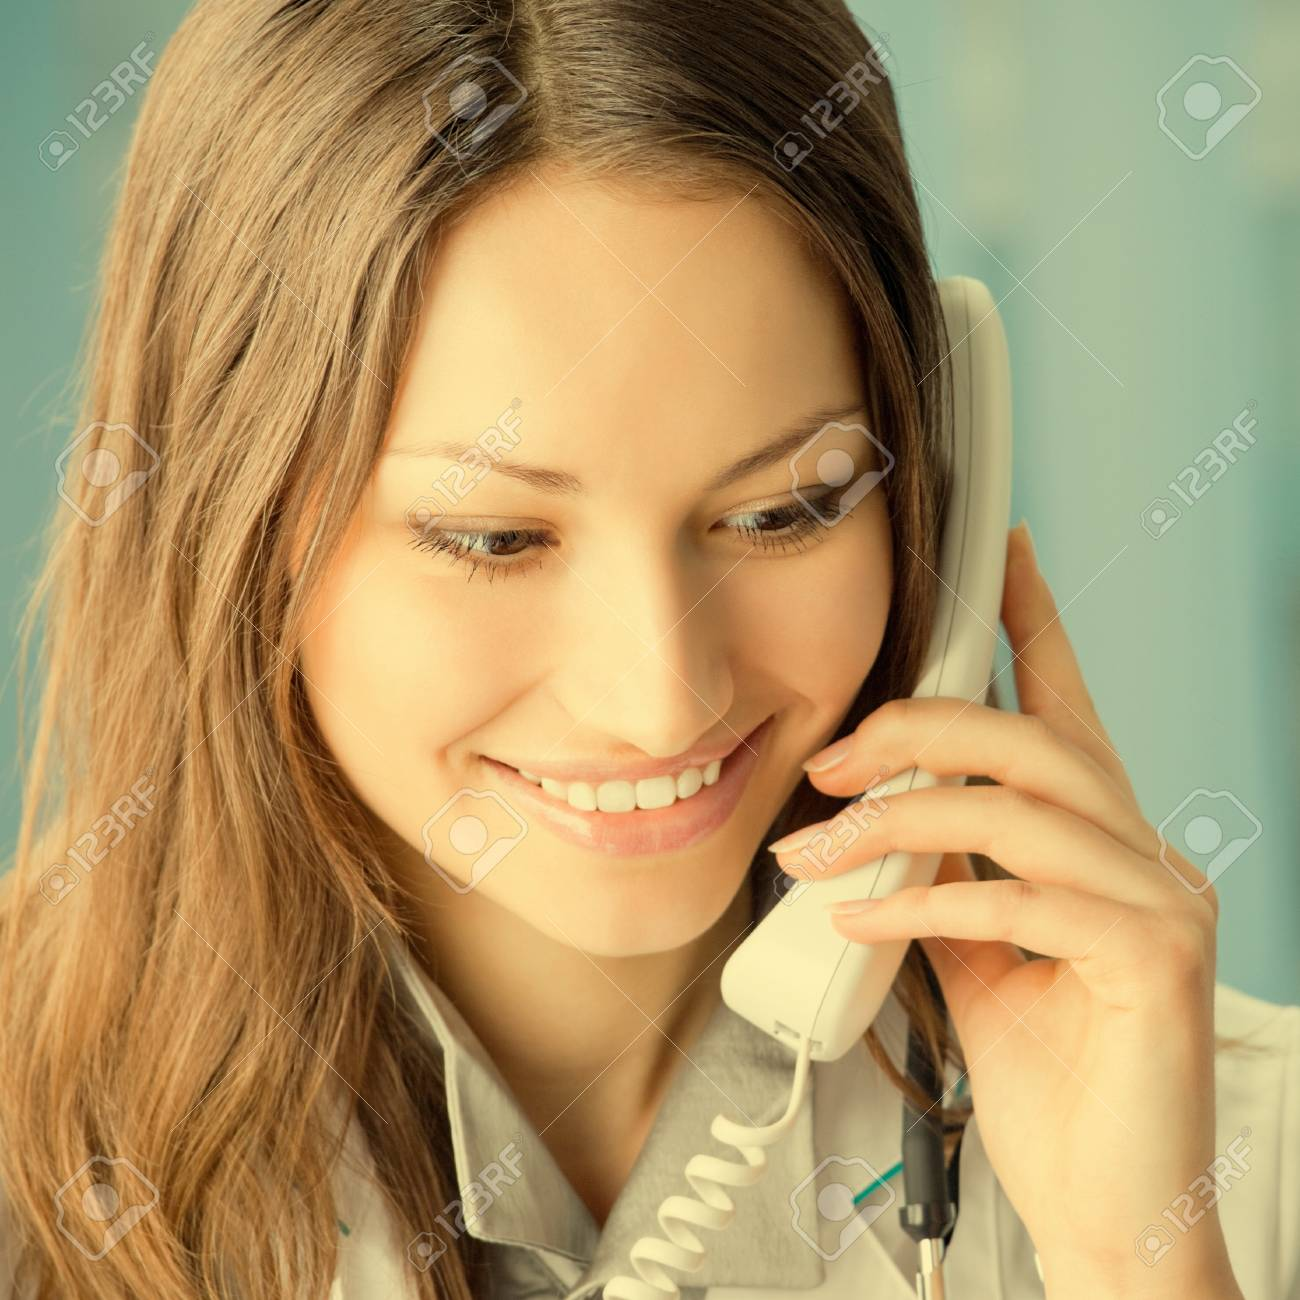 Portrait of happy smiling cheerful young female doctor on phone, at office Stock Photo - 29750463